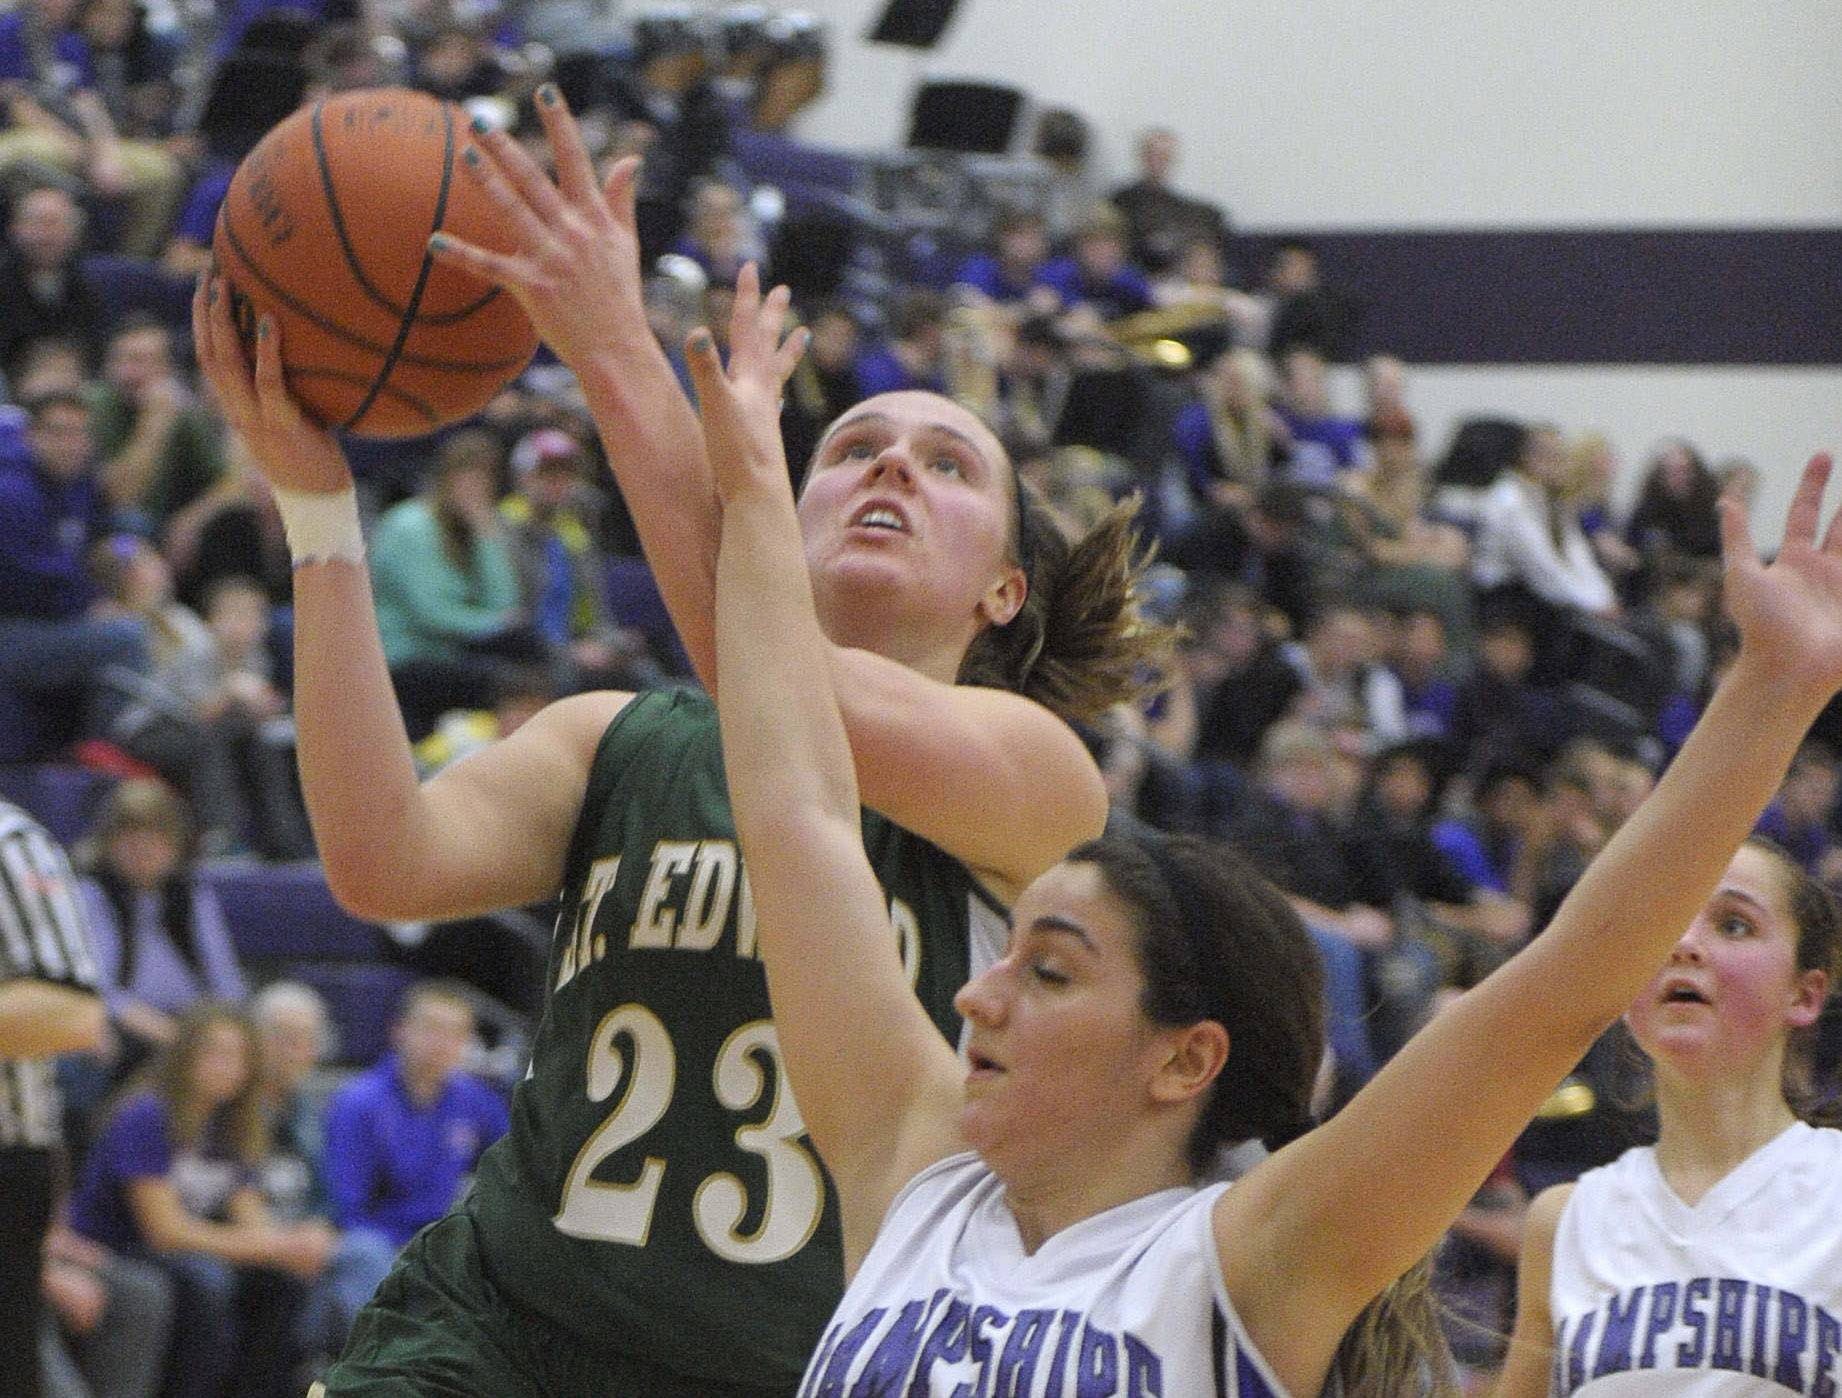 Images from the Hampshire vs. St. Edward girls basketball game on Saturday, Jan. 24 in Hampshire.